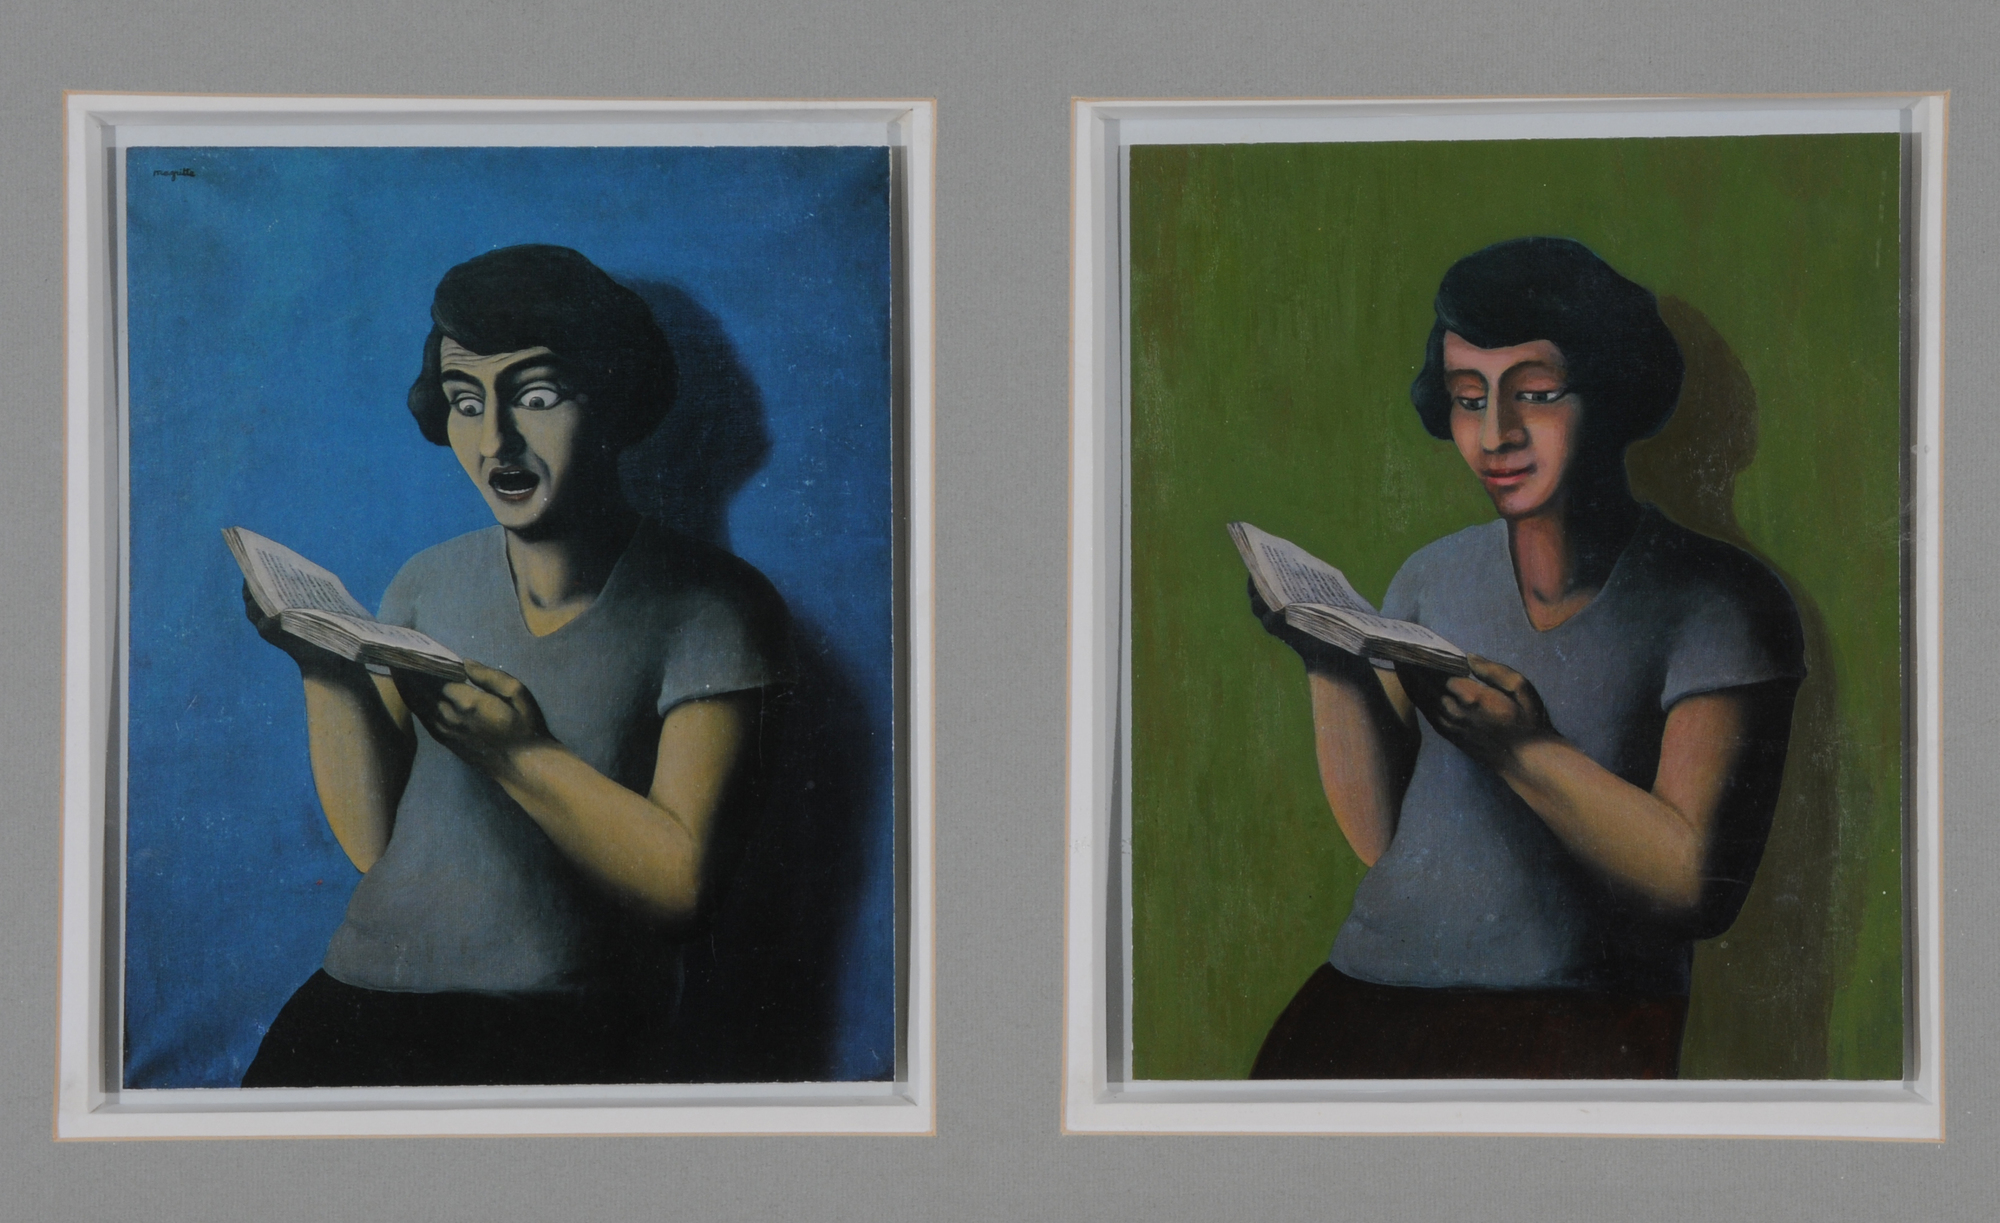 Schwarz Martin, Diptych. Untitled (The Submissive Reader, after Magritte)